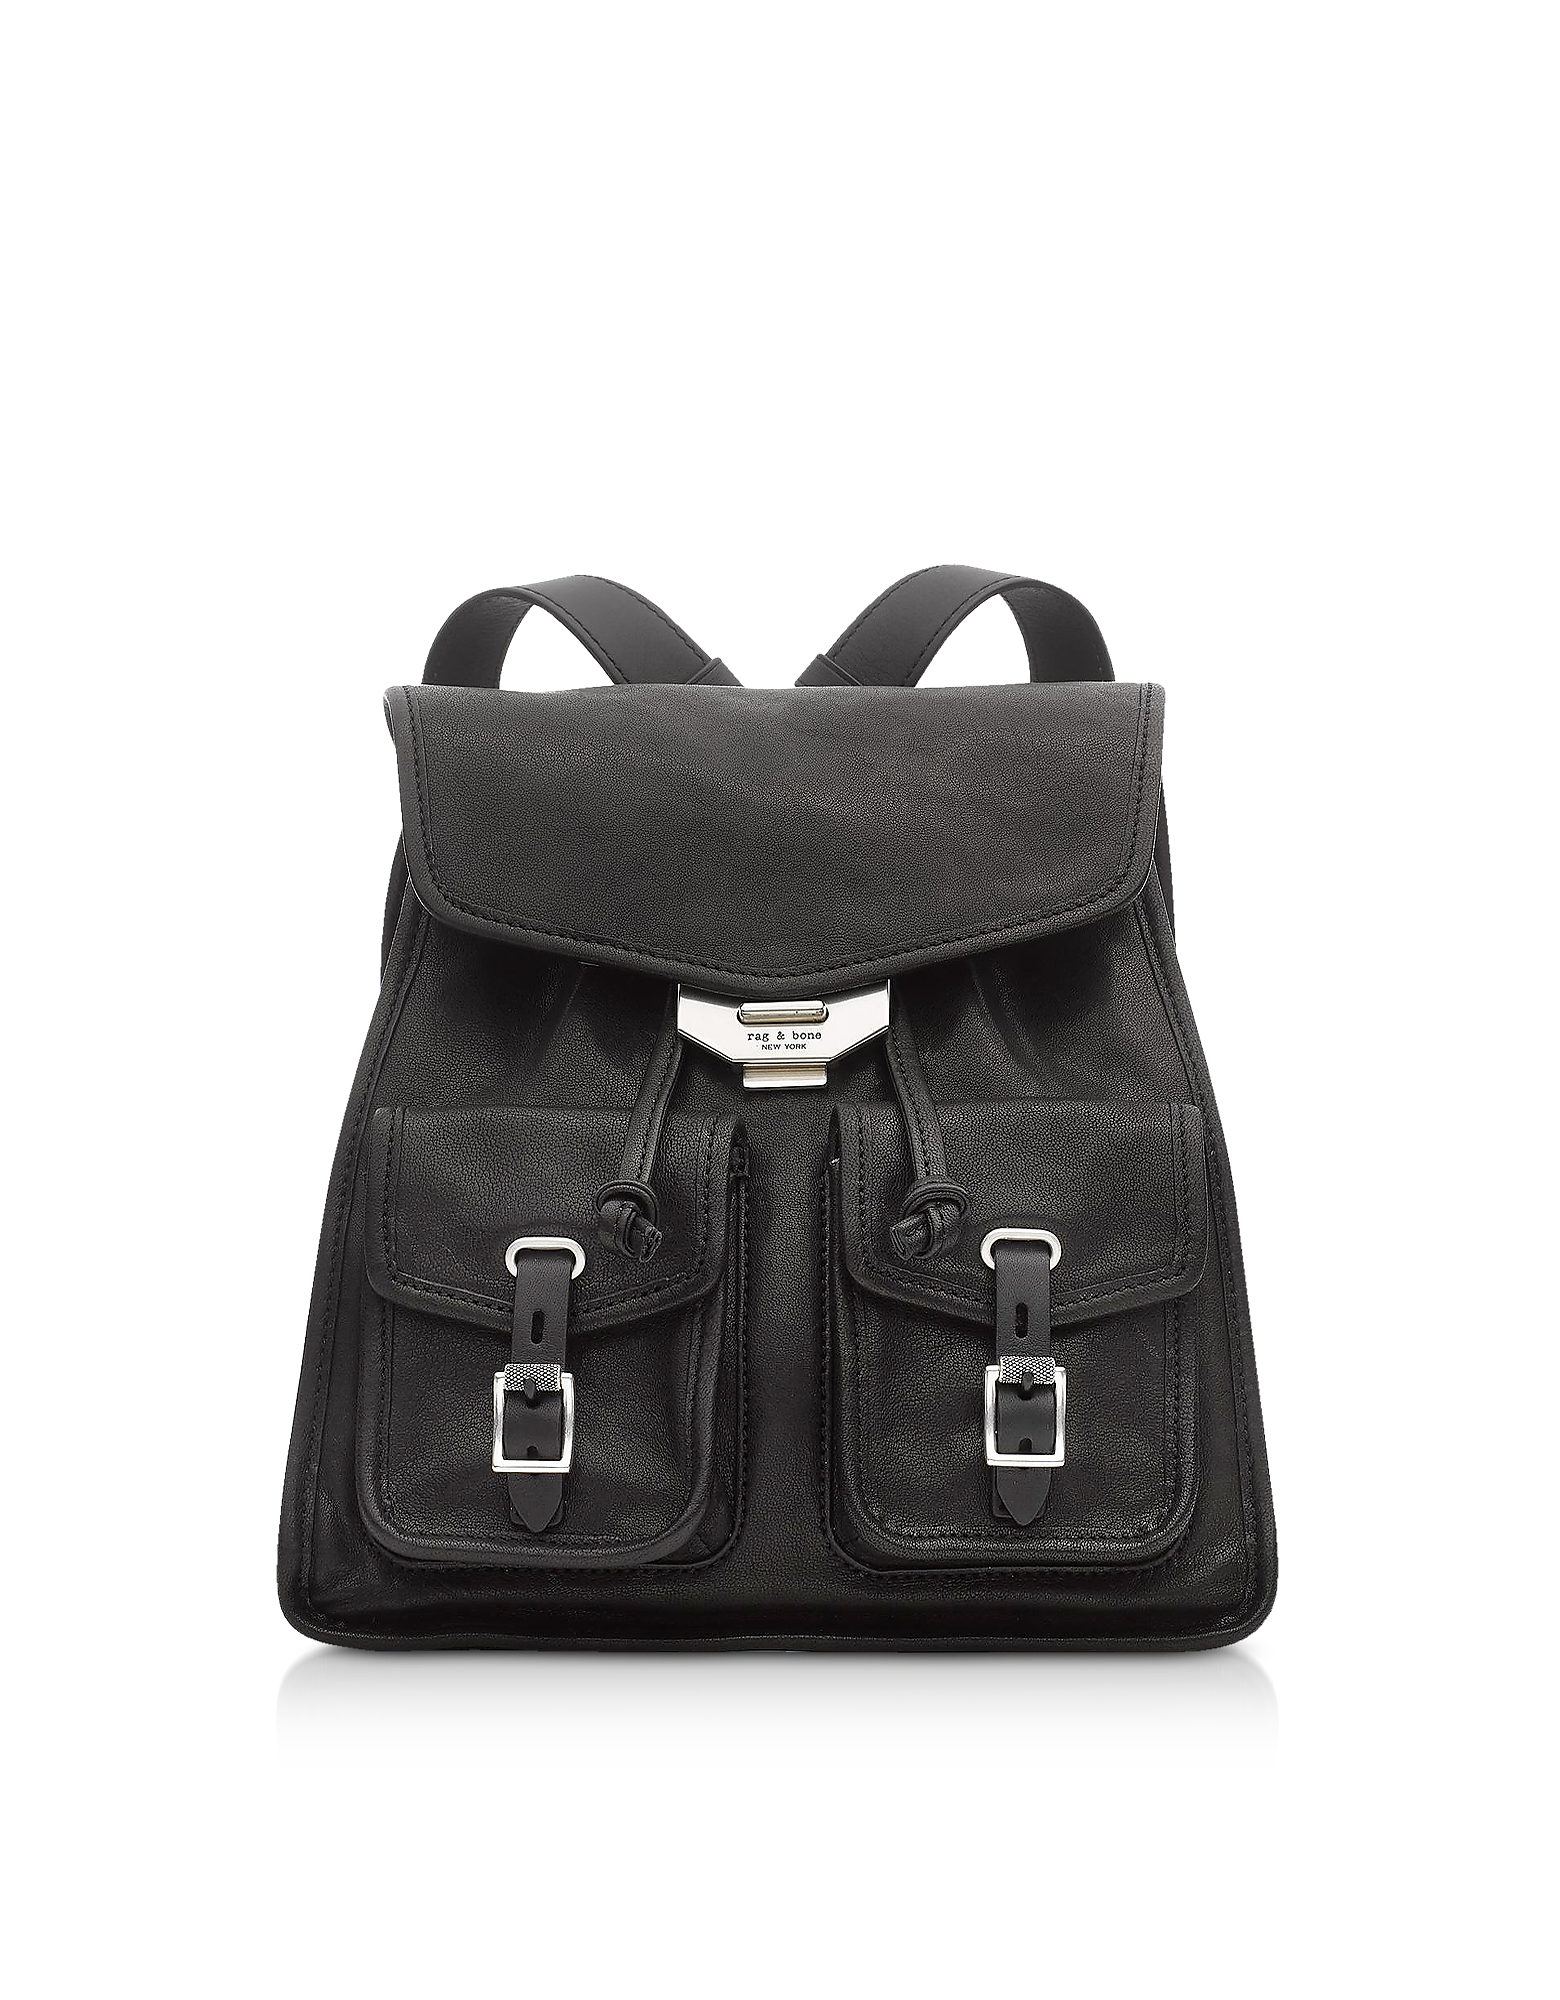 Black Leather Field Small Backpack